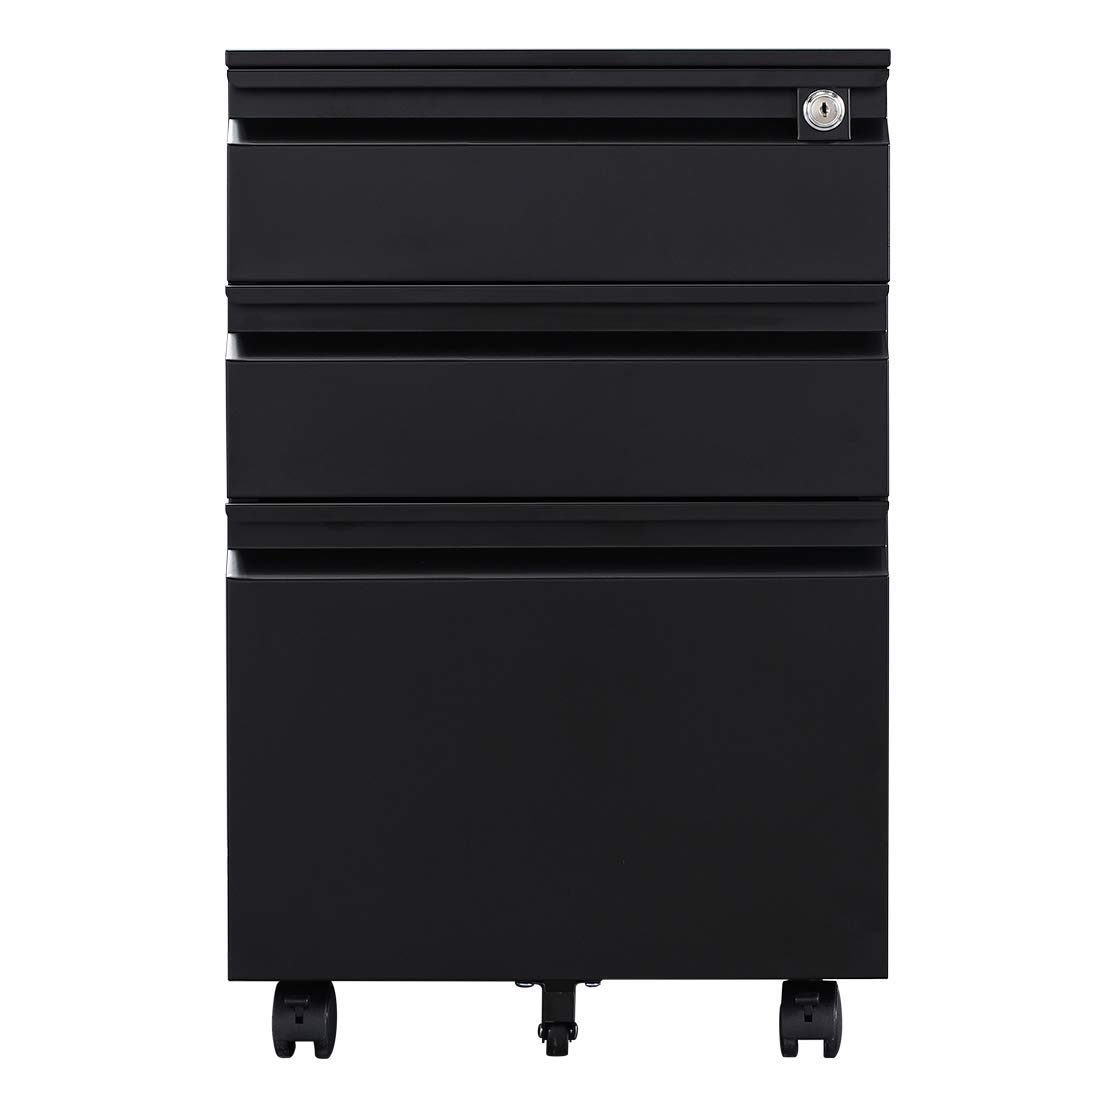 GREATMEET Metal Mobile File Cabinet with Lock,Fully Disassembled 3 Drawer Locking Filing Cabinet Legal/Letter Size (Black) by GREATMEET